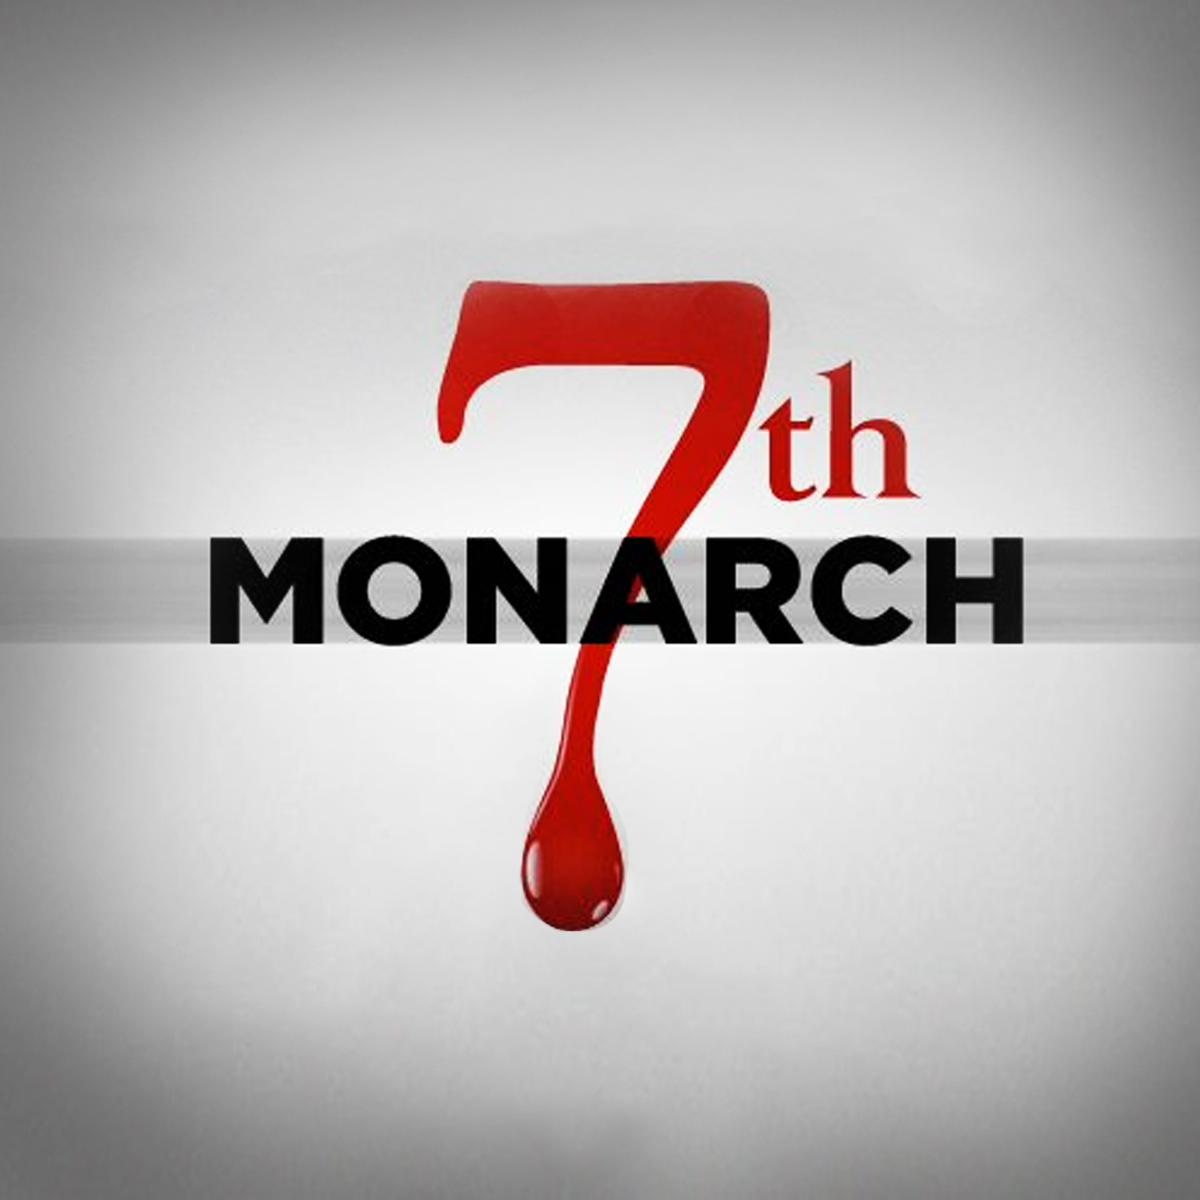 7th Monarch Sq.jpg